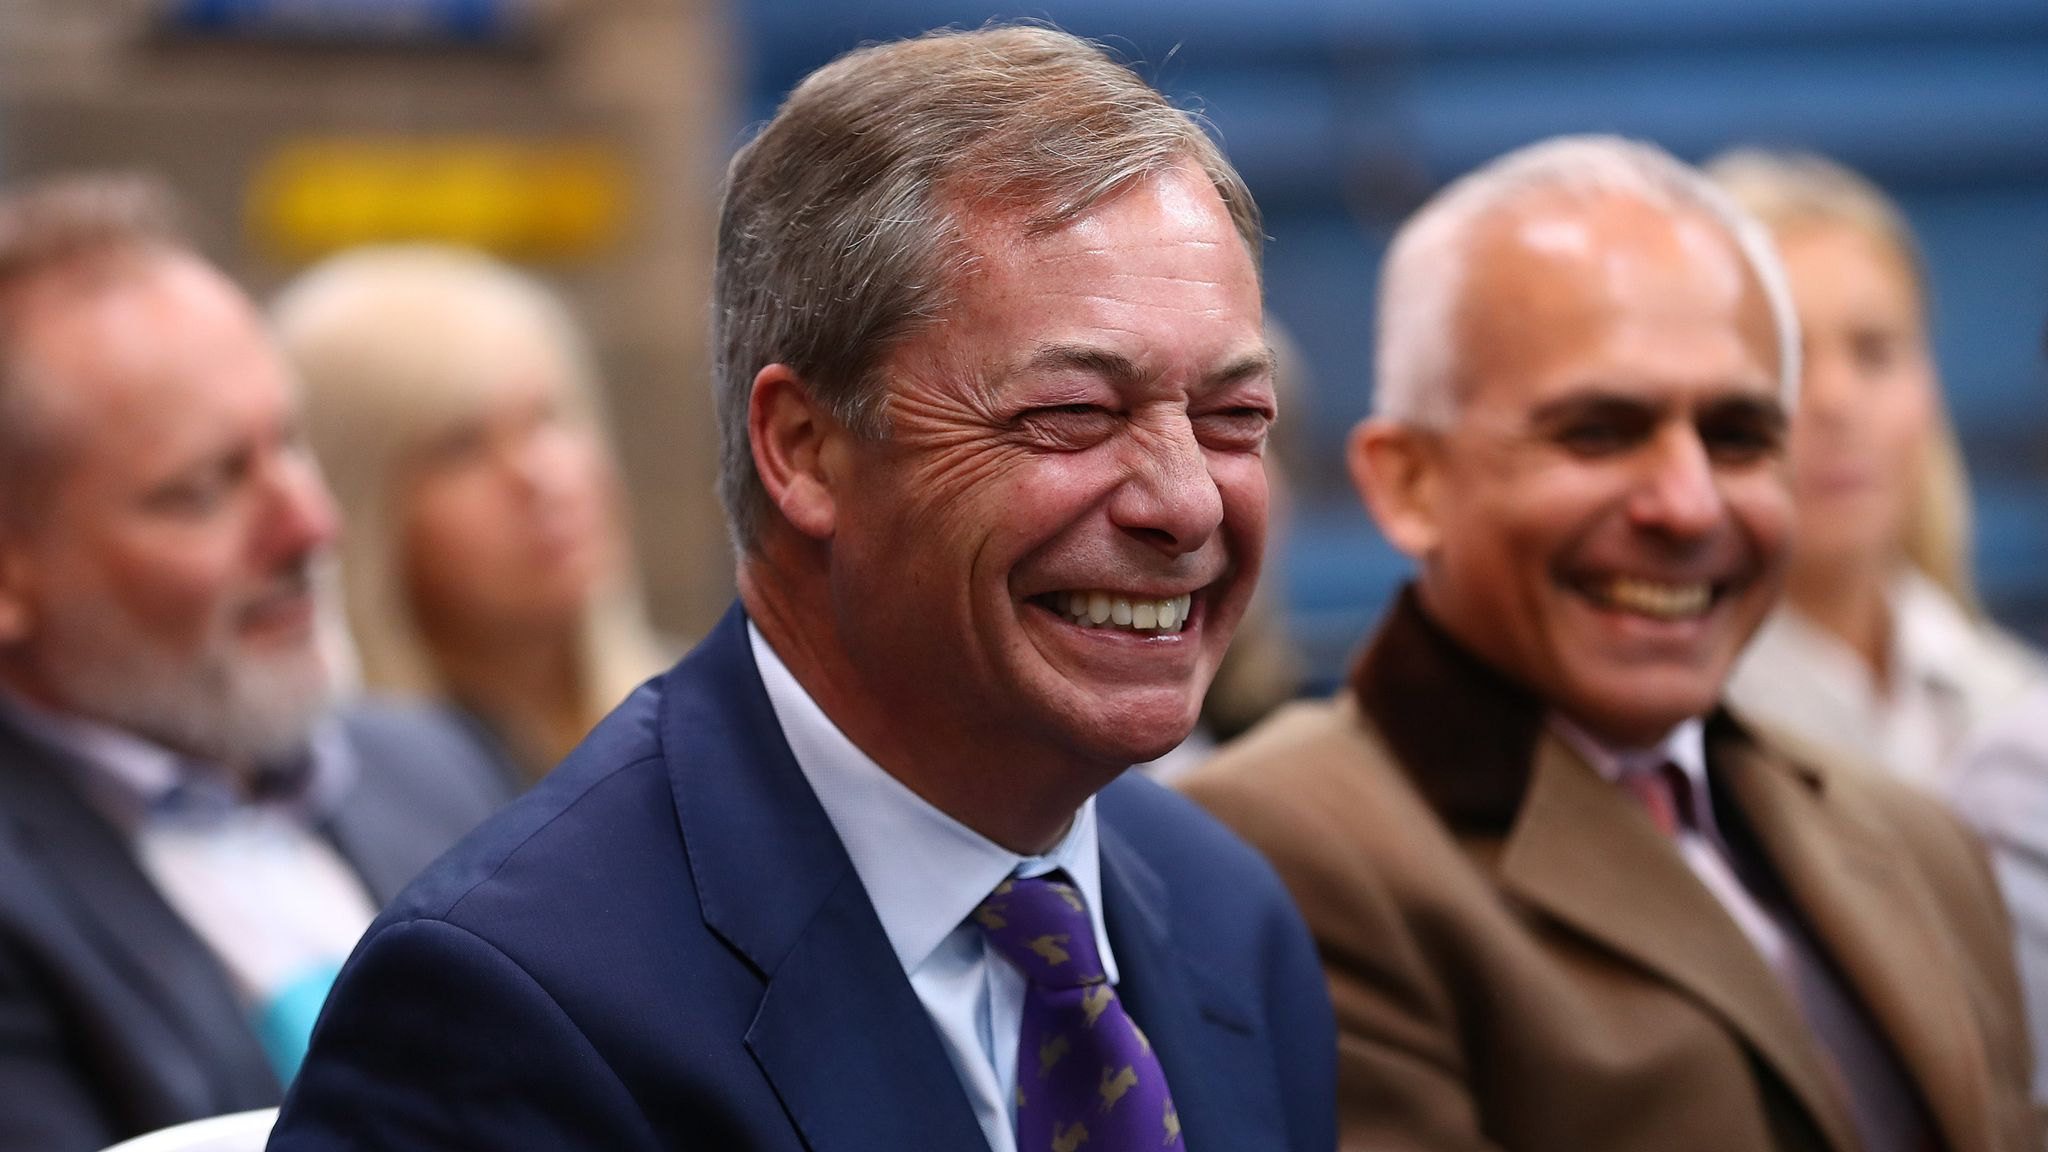 Nigel Farage Views Of His Youtube Videos Have Risen 460 In 30 Days Science Tech News Sky News